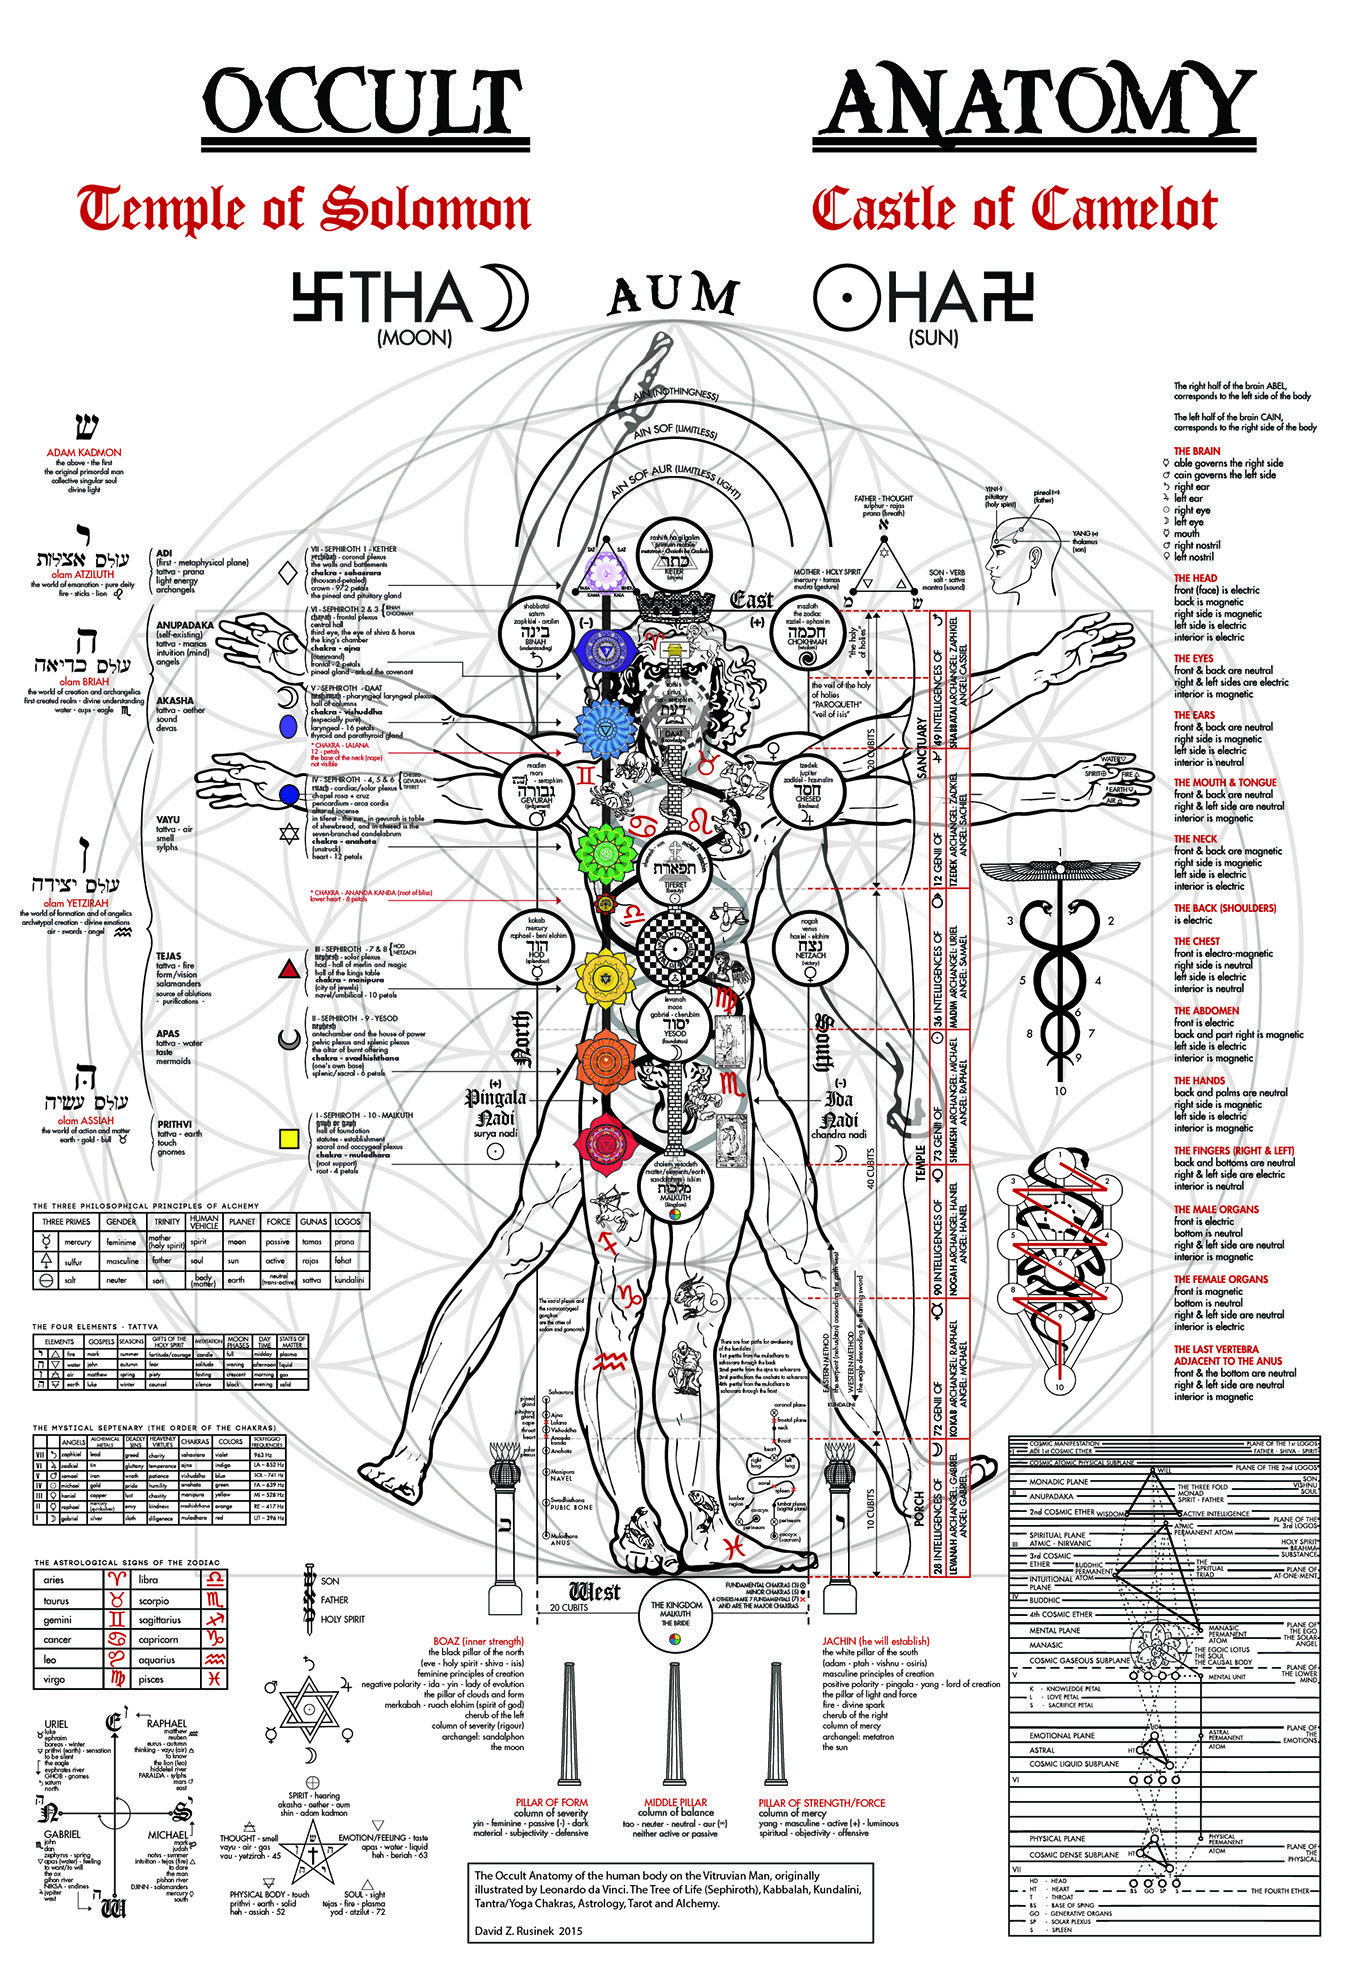 The Occult Anatomy Print - Kabbalah, Alchemy, Tree of Life, Golden